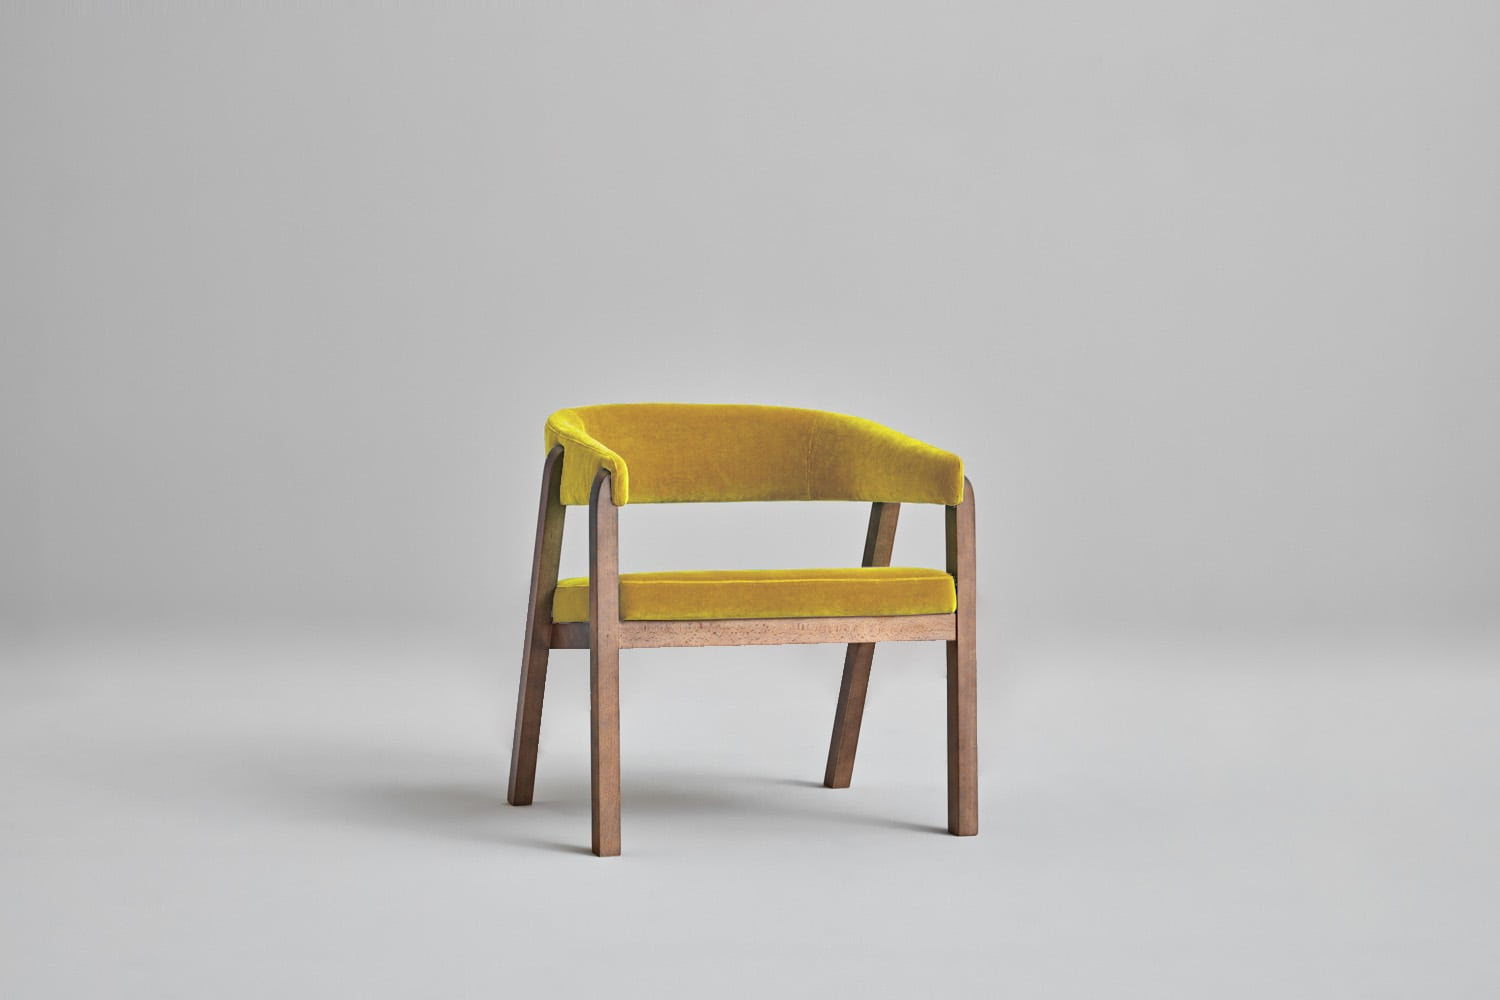 oslo-armchair-contract-furniture